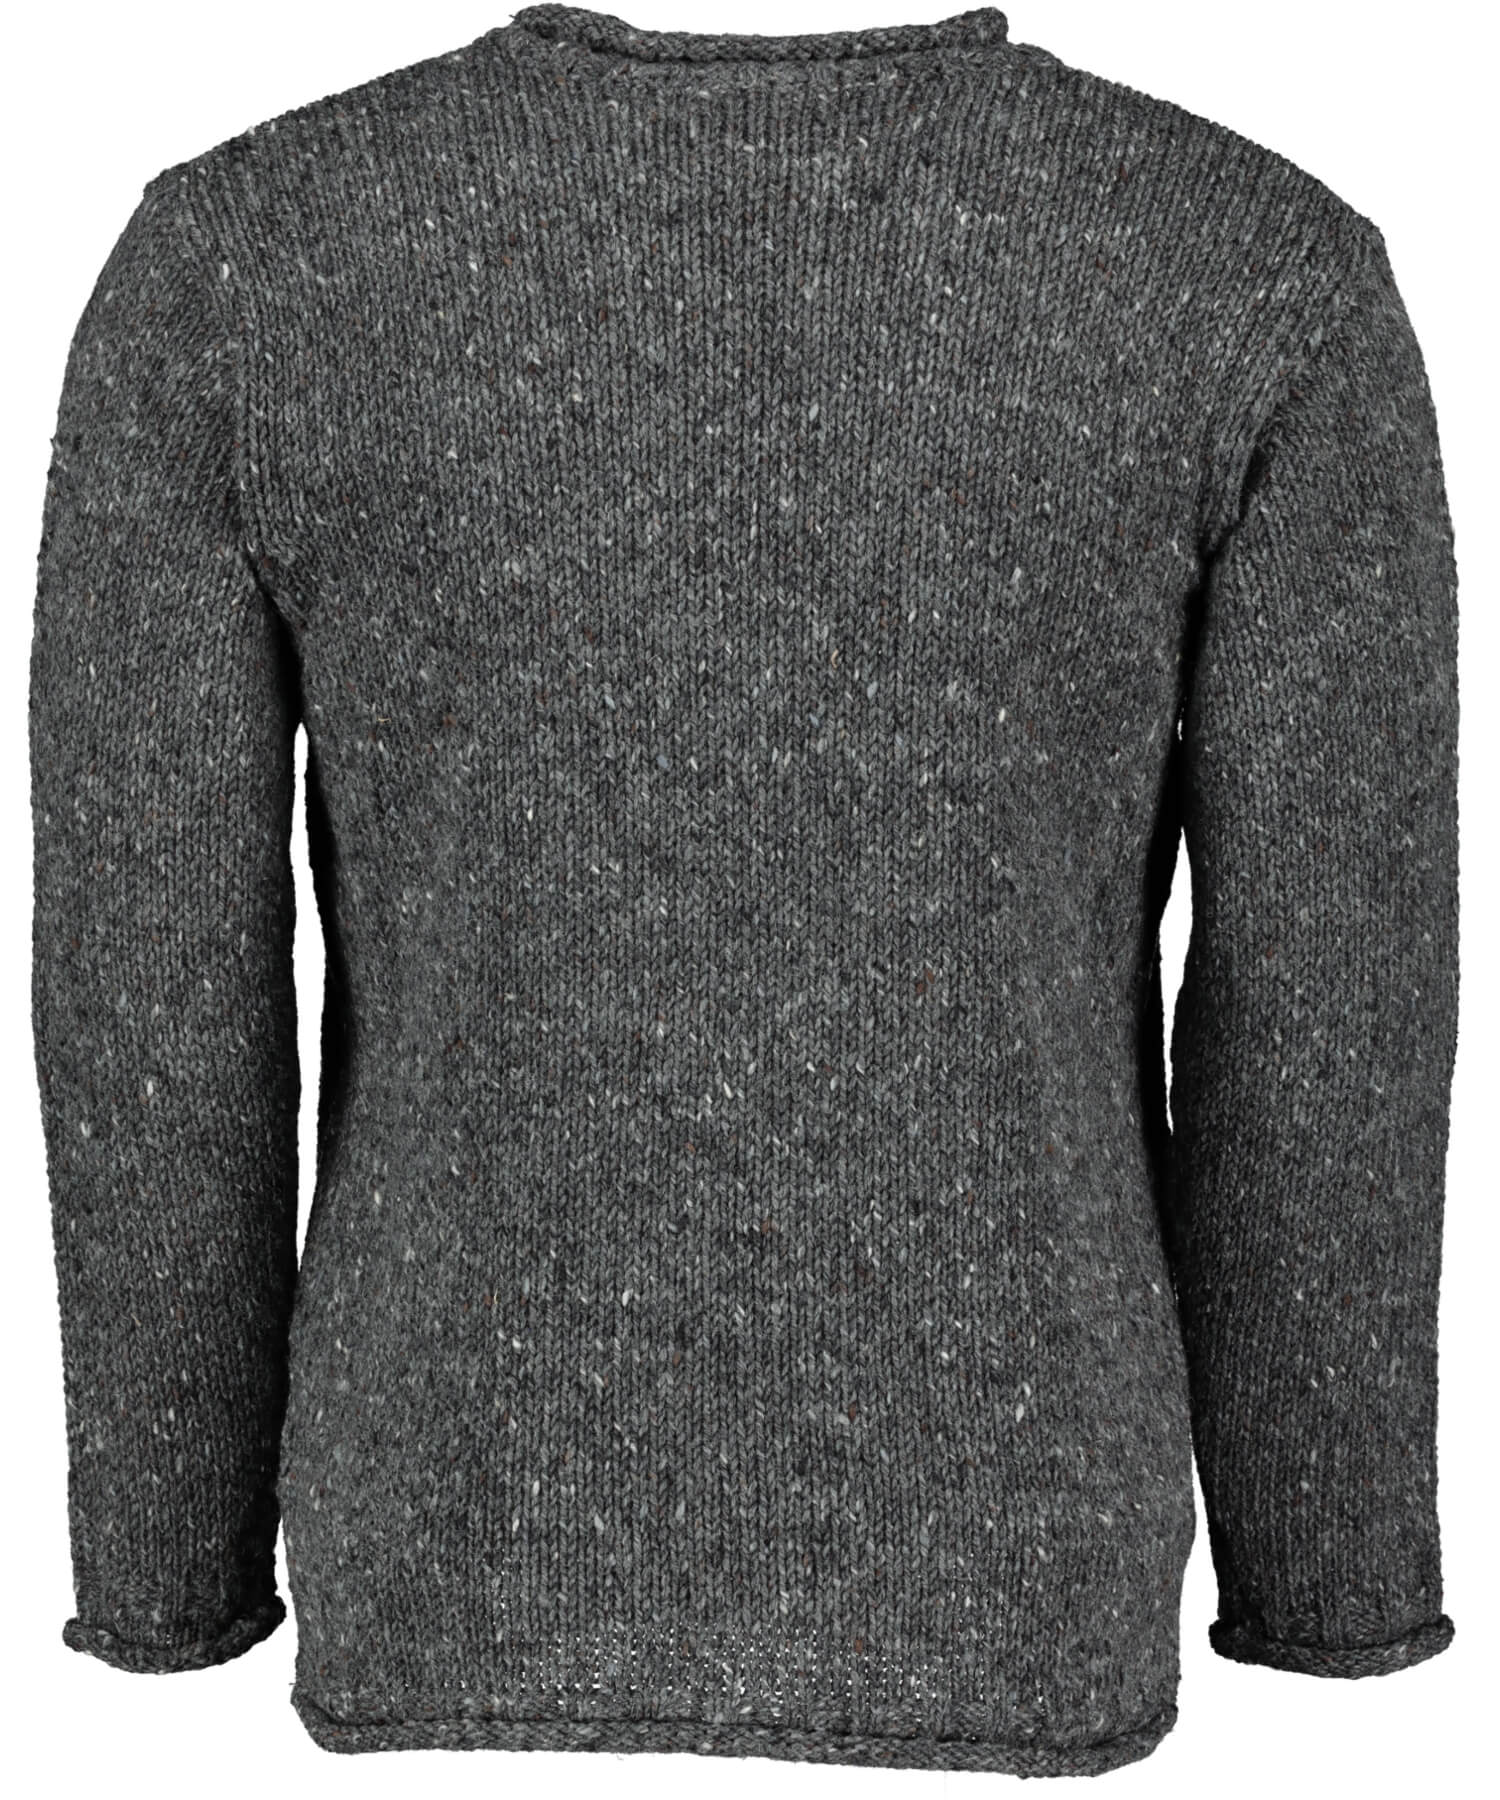 Glenties Curl Neck Sweater - Charcoal Aran Crafts Mens Sweaters & Cardigans